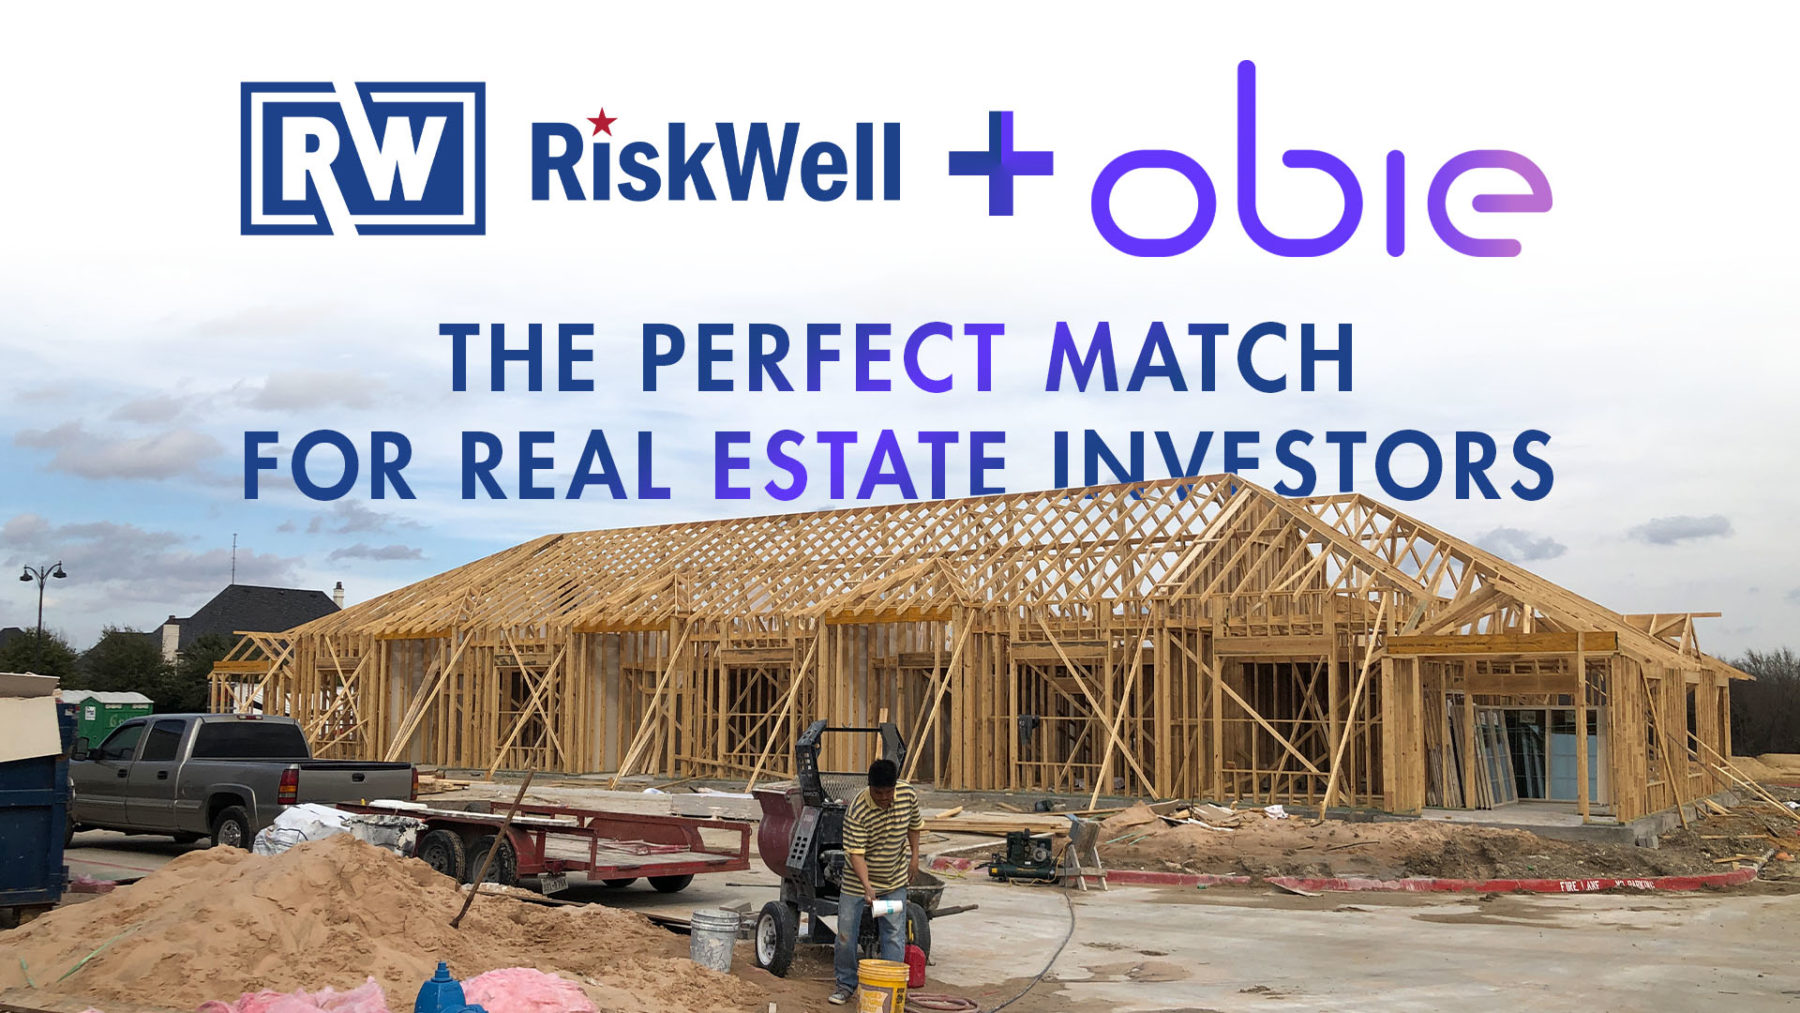 RiskWell and Obie, the perfect match for real estate investors.